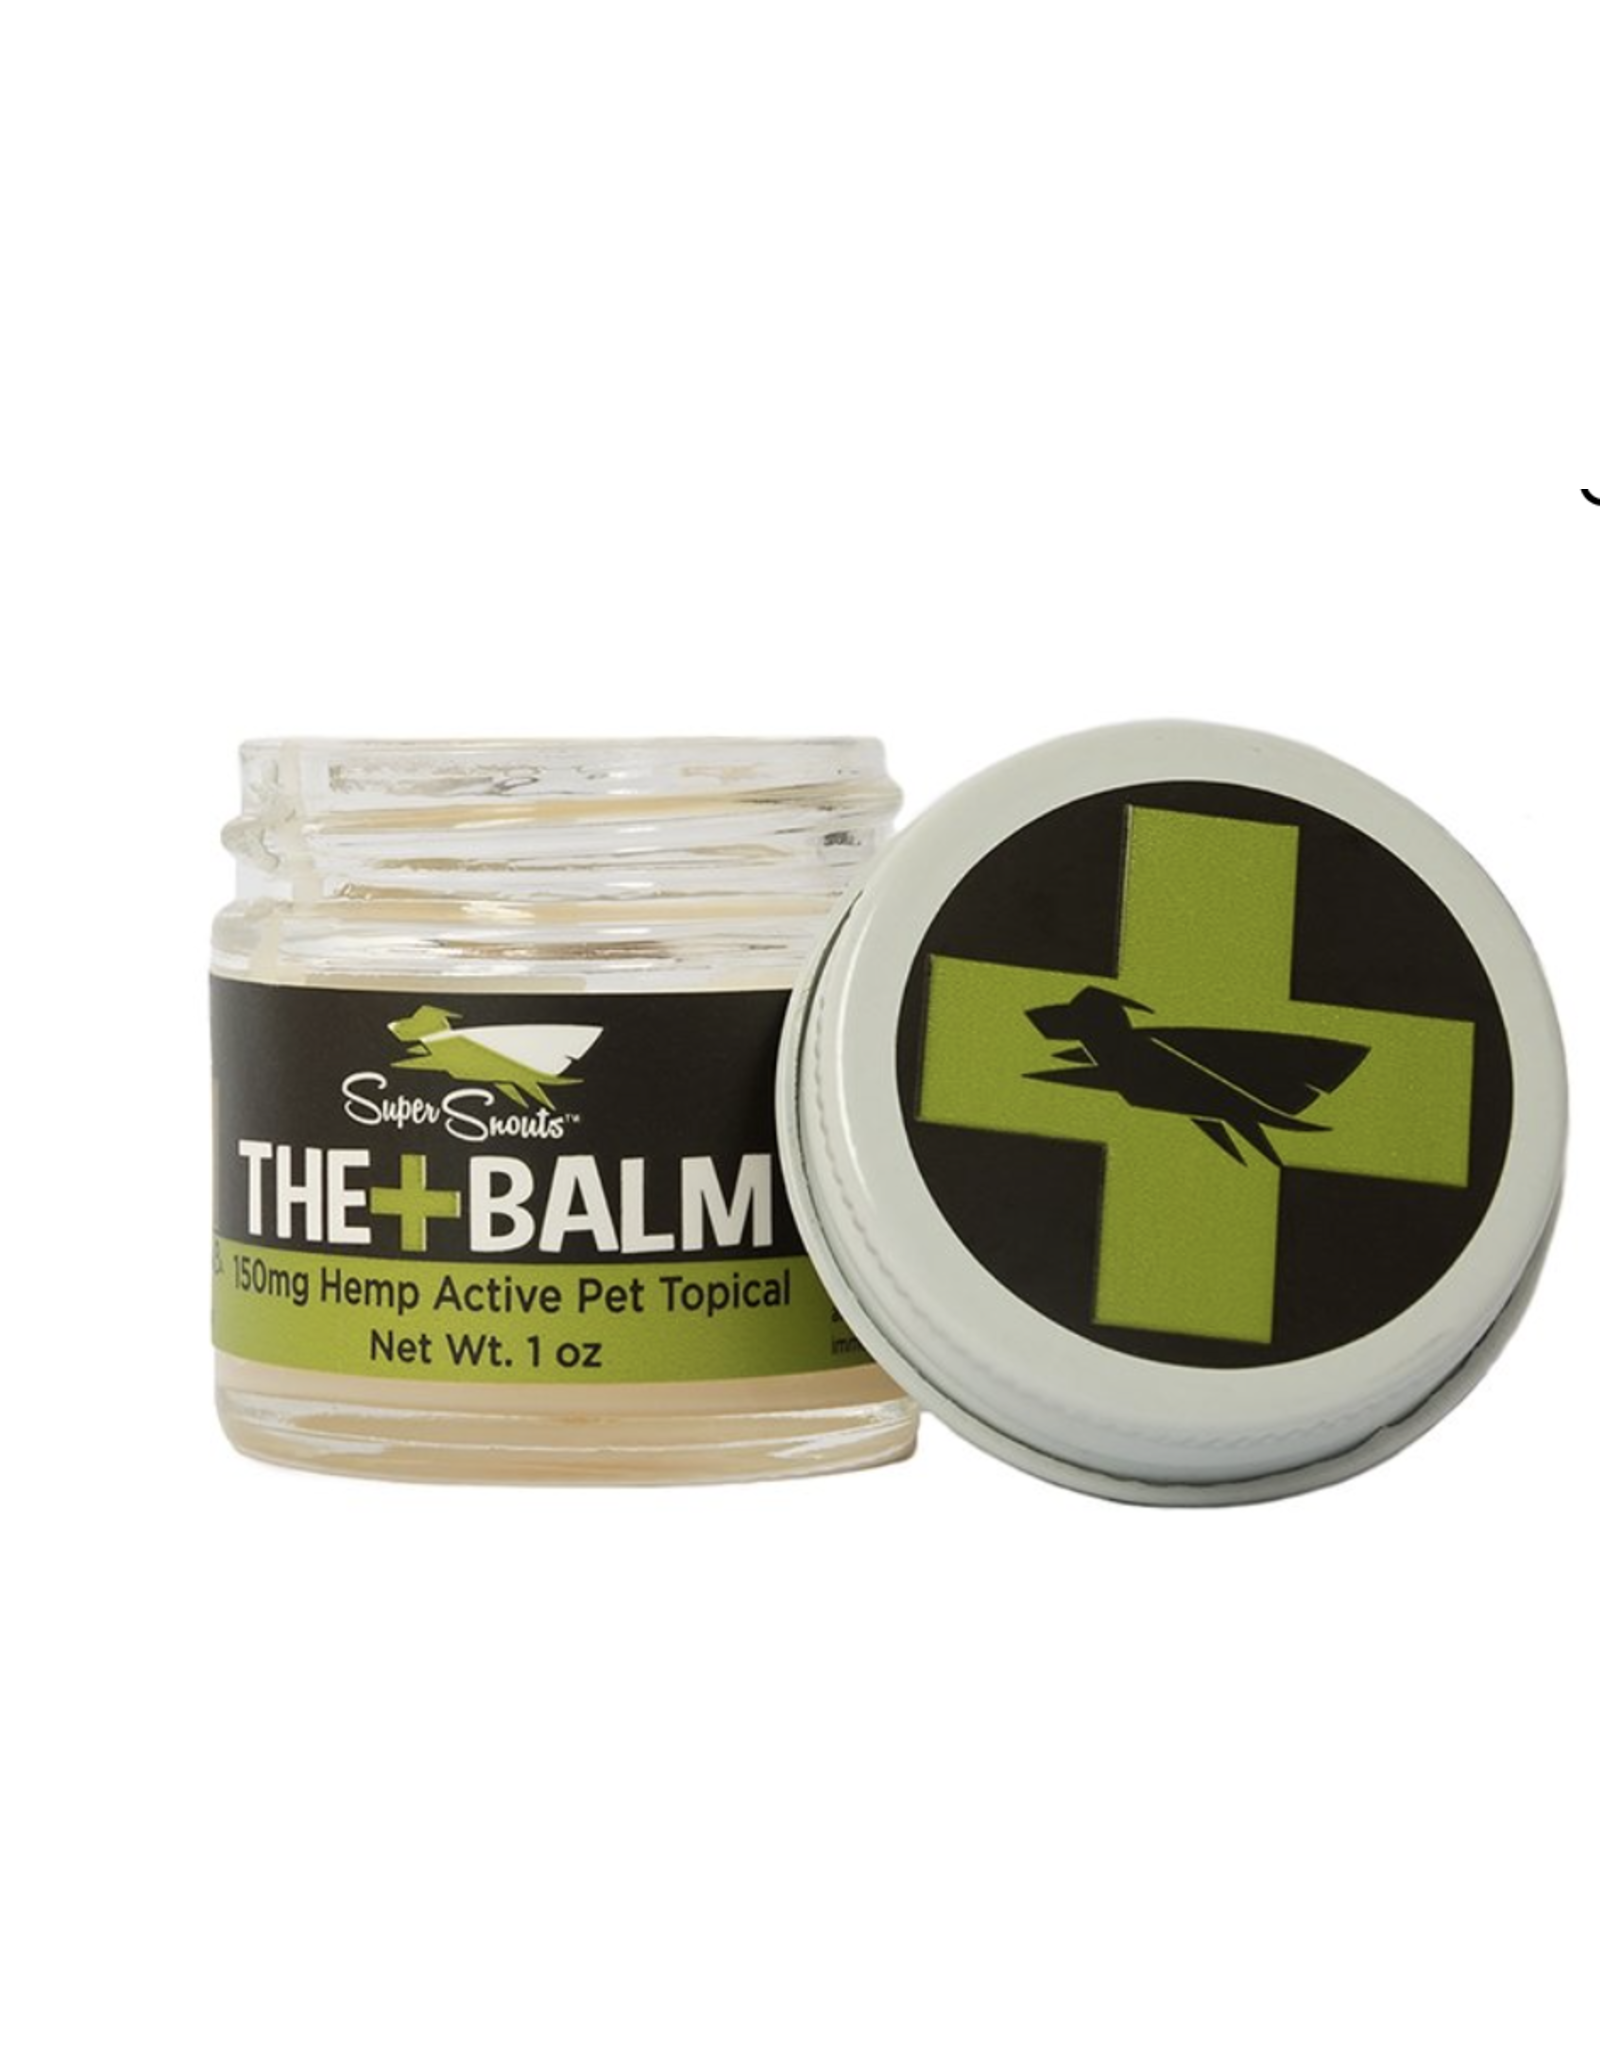 Super Snout Hemp THE BALM 150MG PCR NATURAL TOPICAL FOR DOGS 1OZ